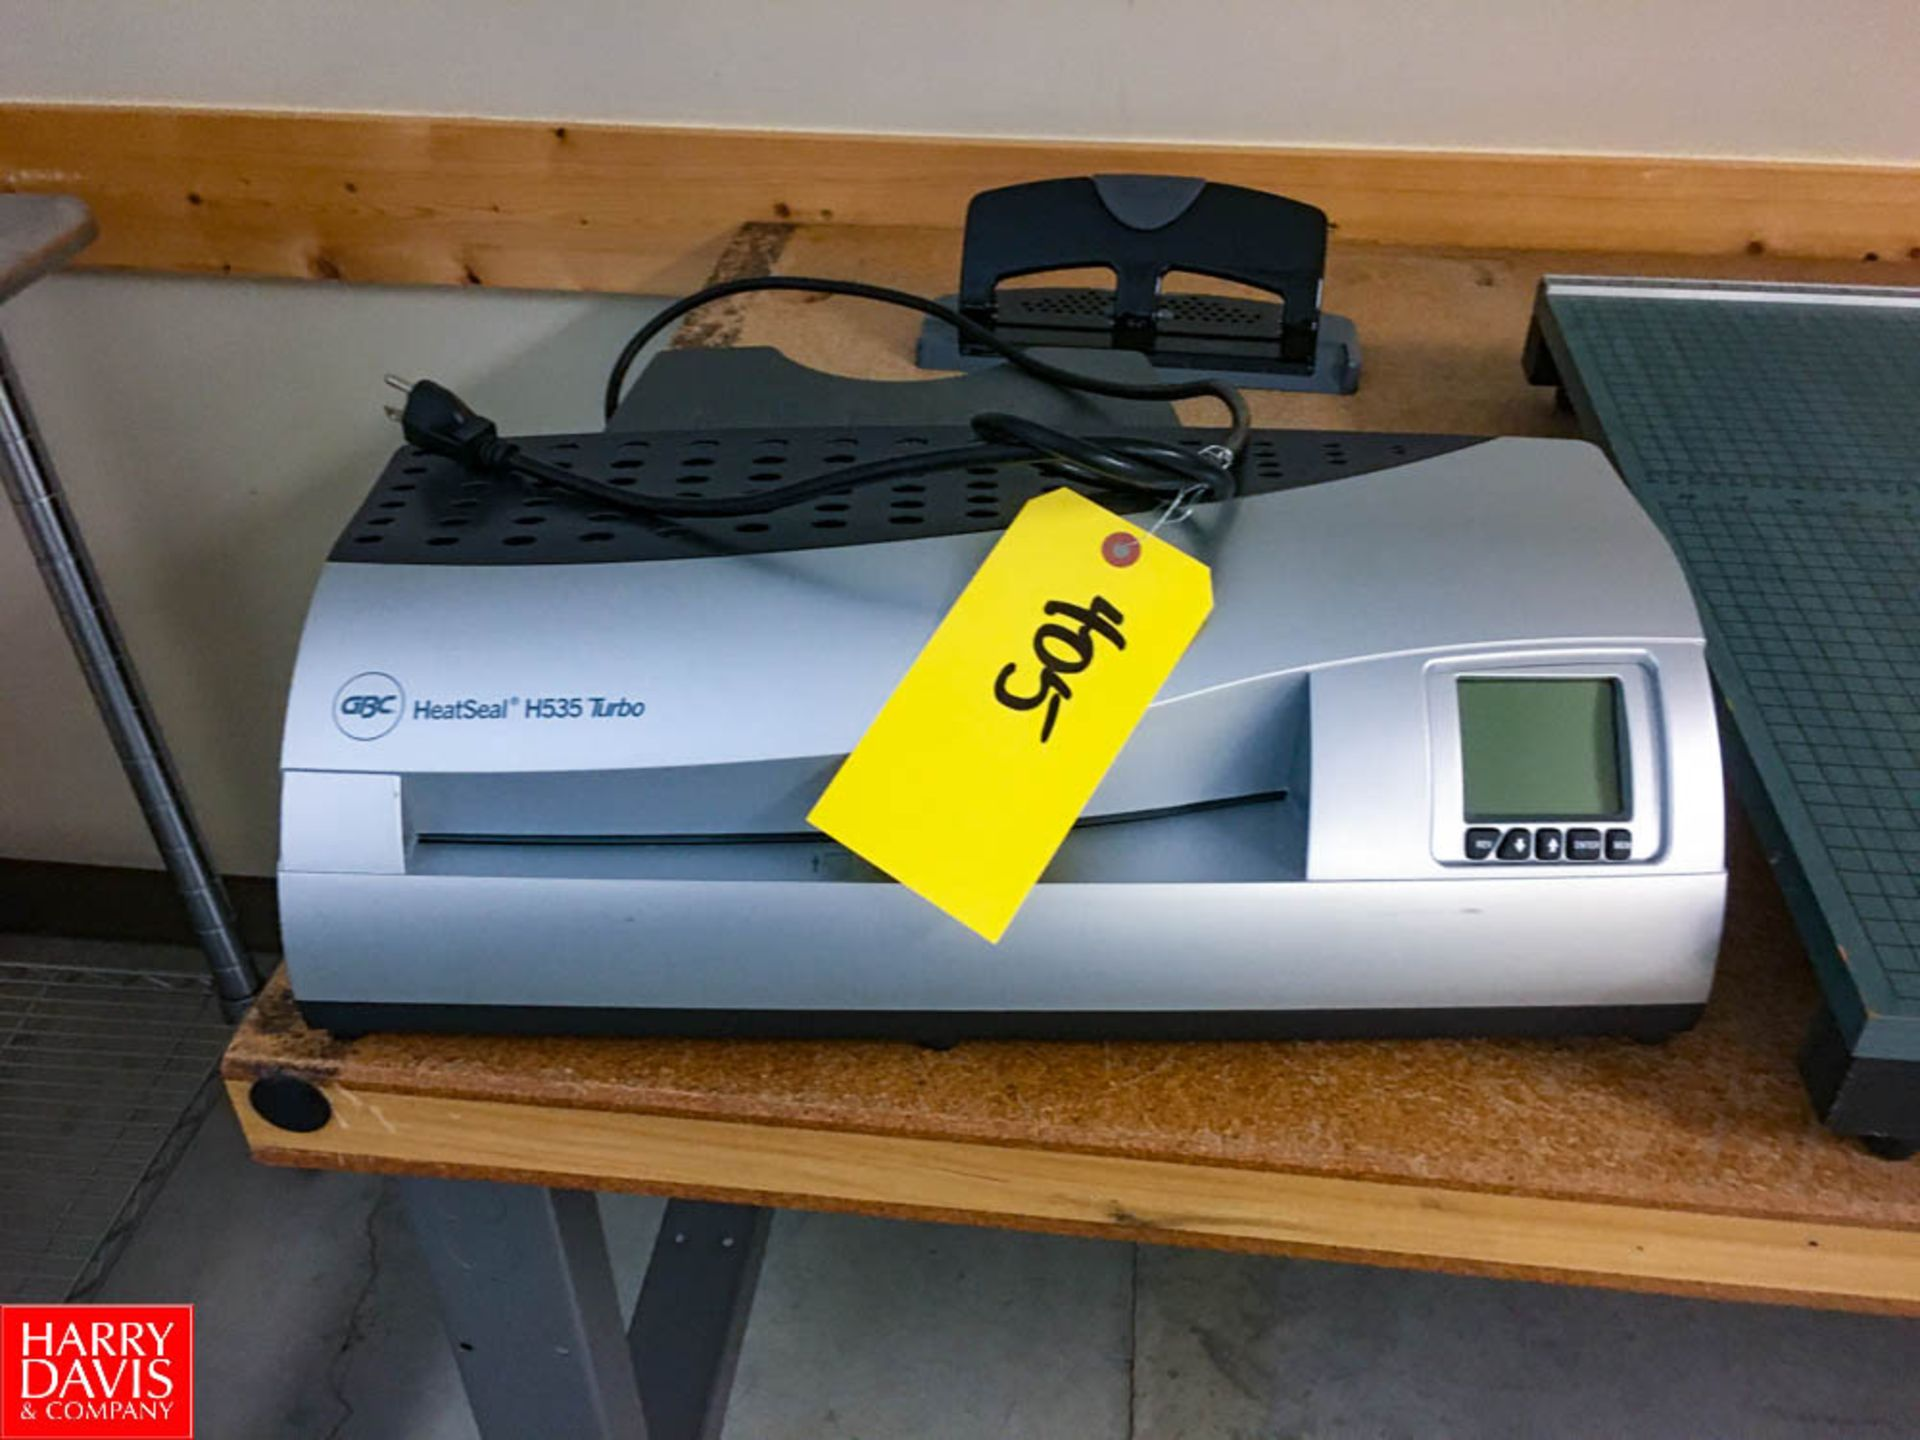 GBC Heat Seal Laminator Model: H535 Turbo Rigging: $25